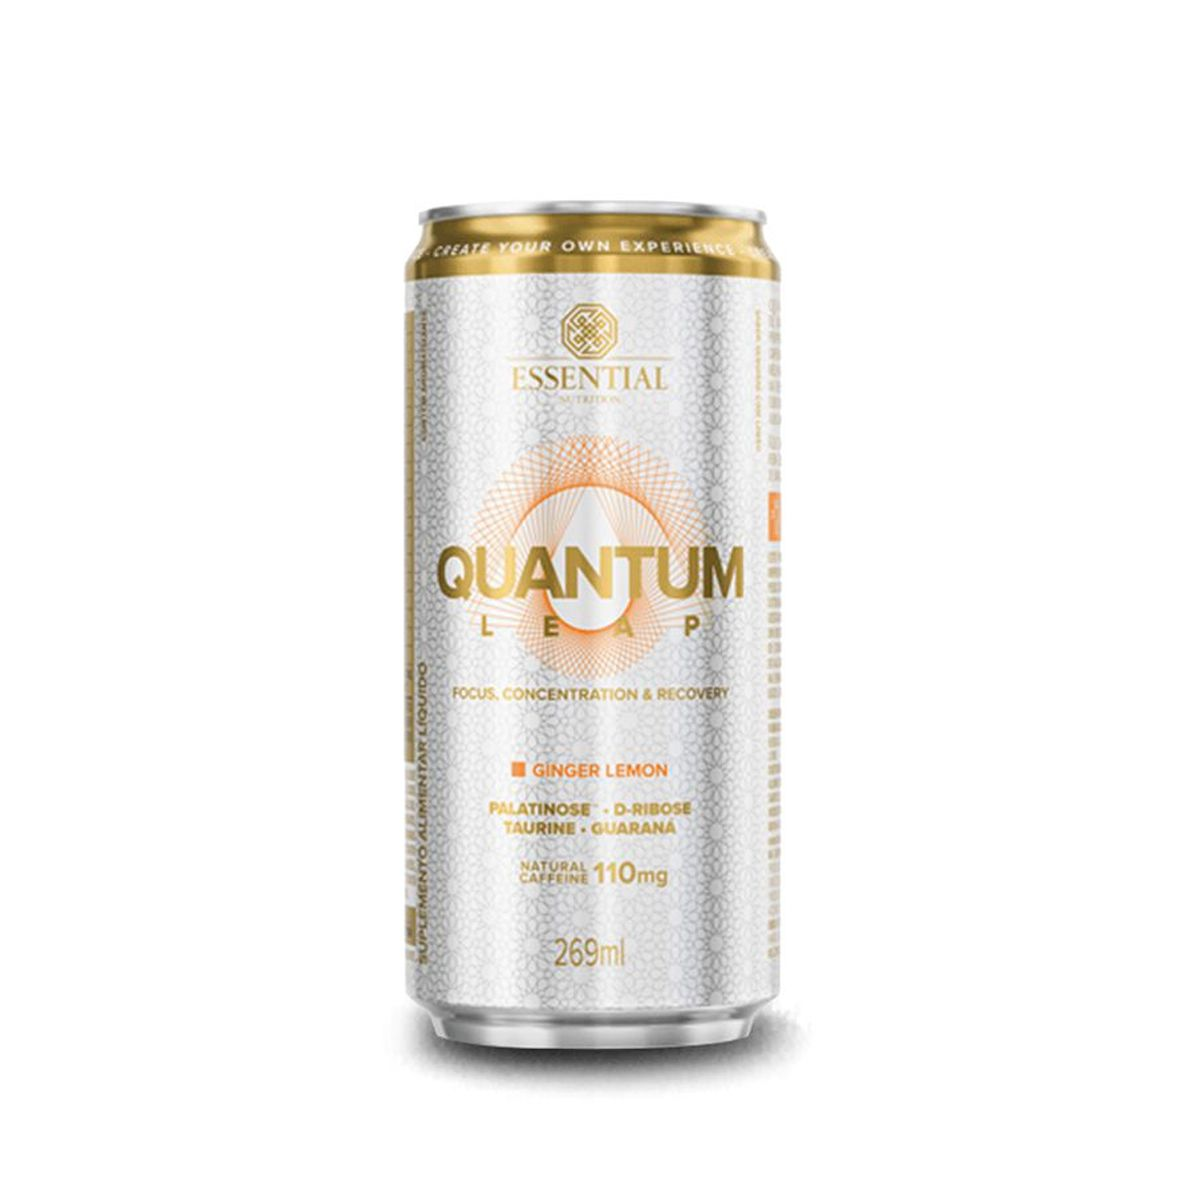 Quantum Leap - 269ml - Essential Nutrition